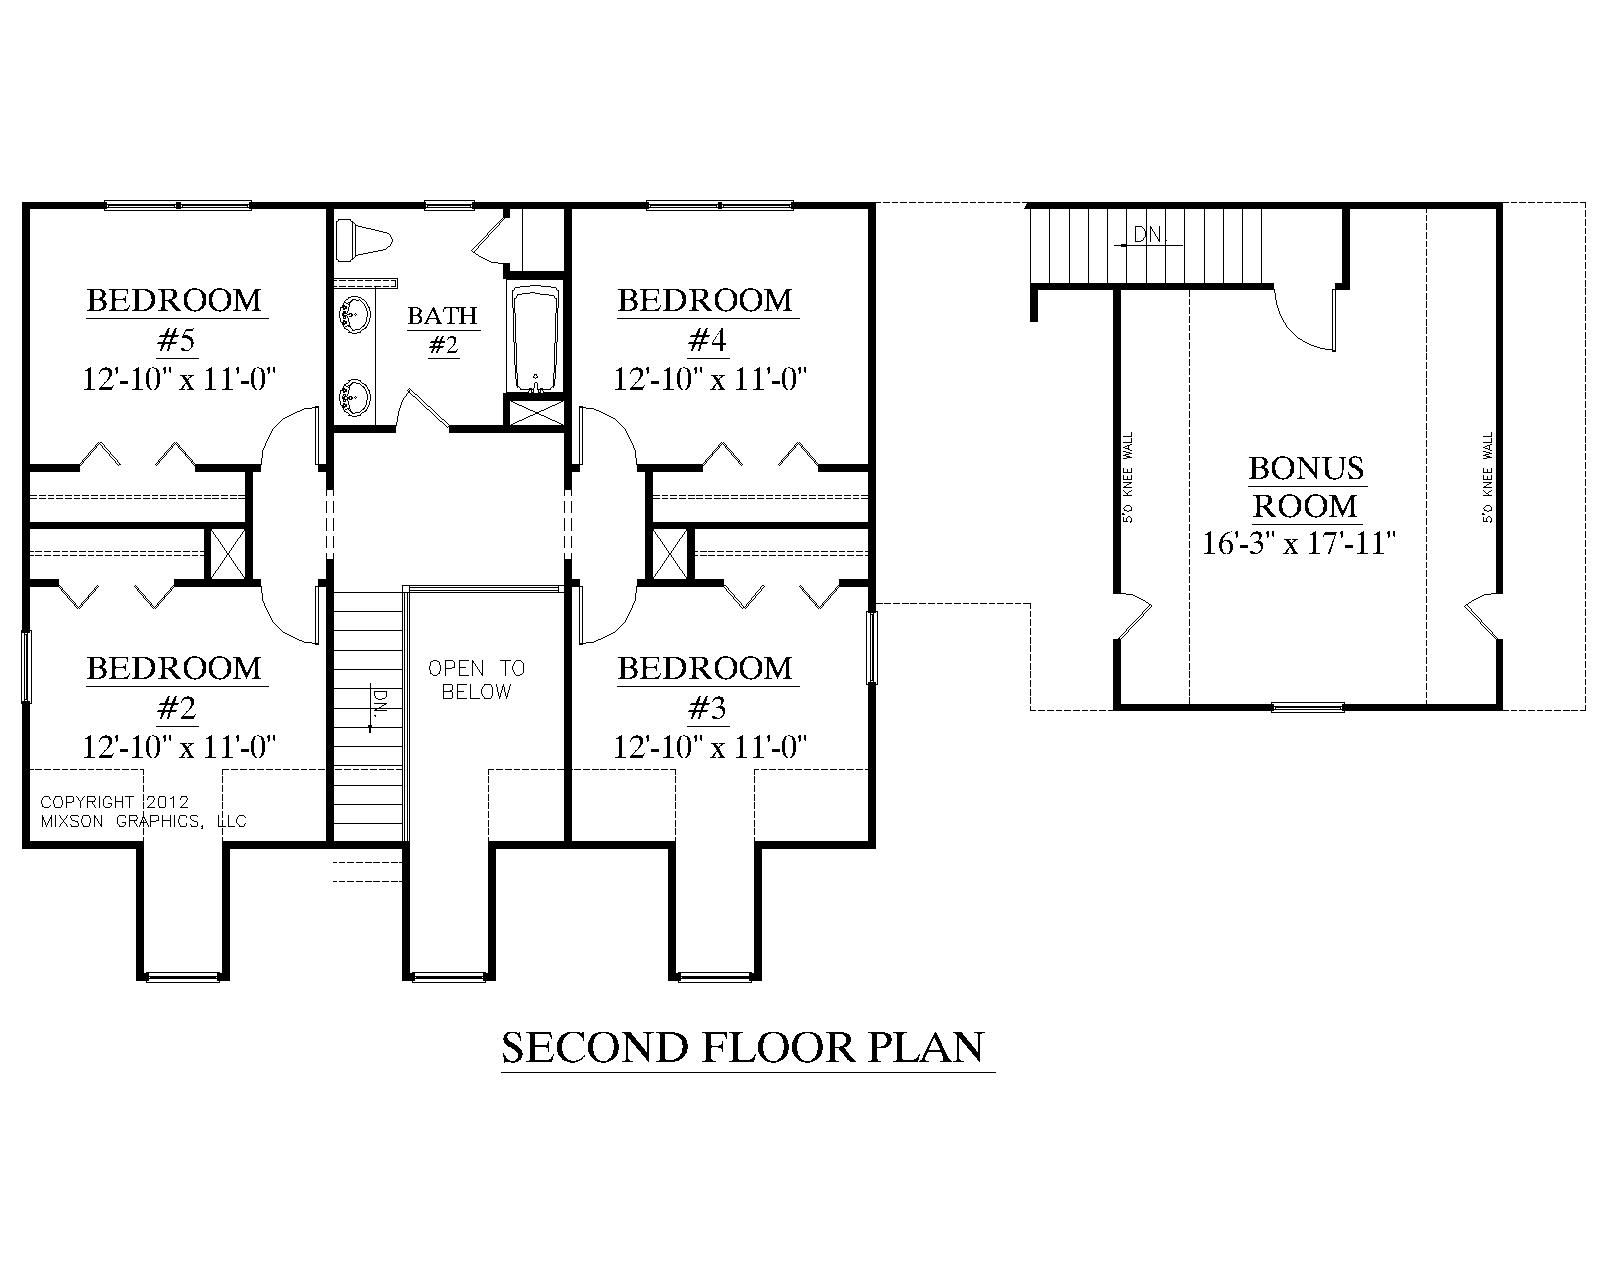 House plan 2341 a montgomery a second floor plan for 2nd story house plans